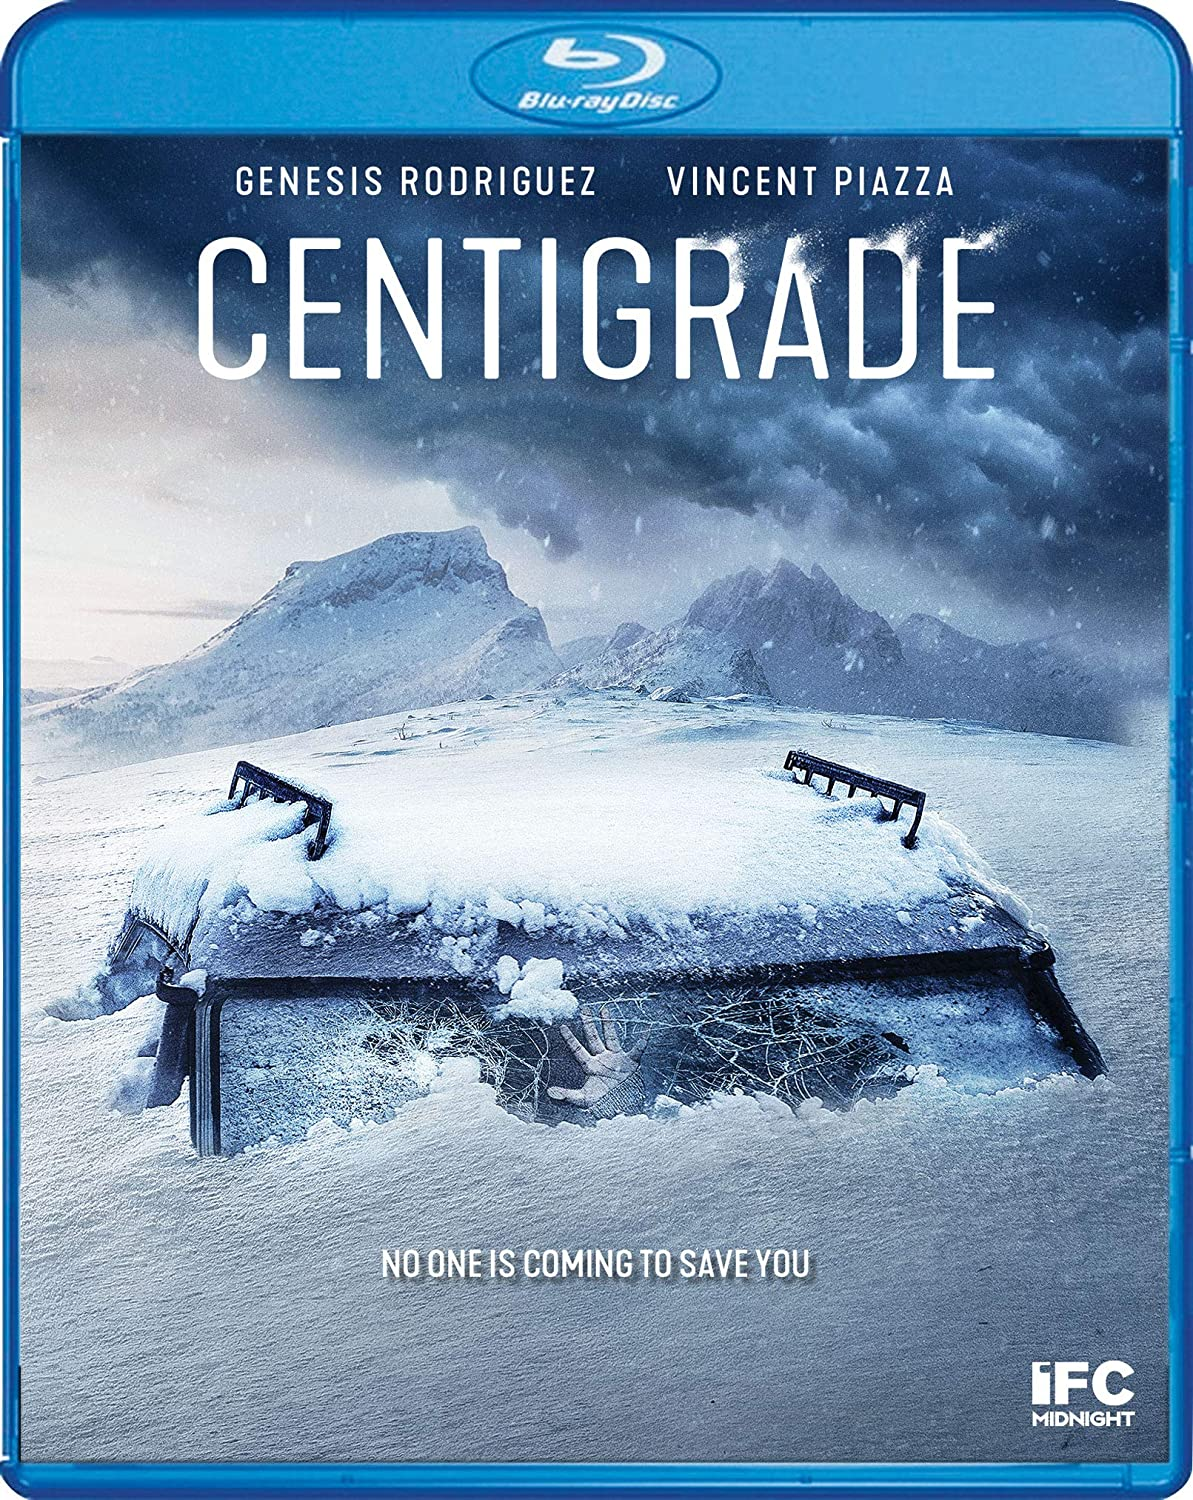 Centigrade (2020) English 720p HEVC BluRay  x265 AAC ESubs (450MB) Full Movie Download